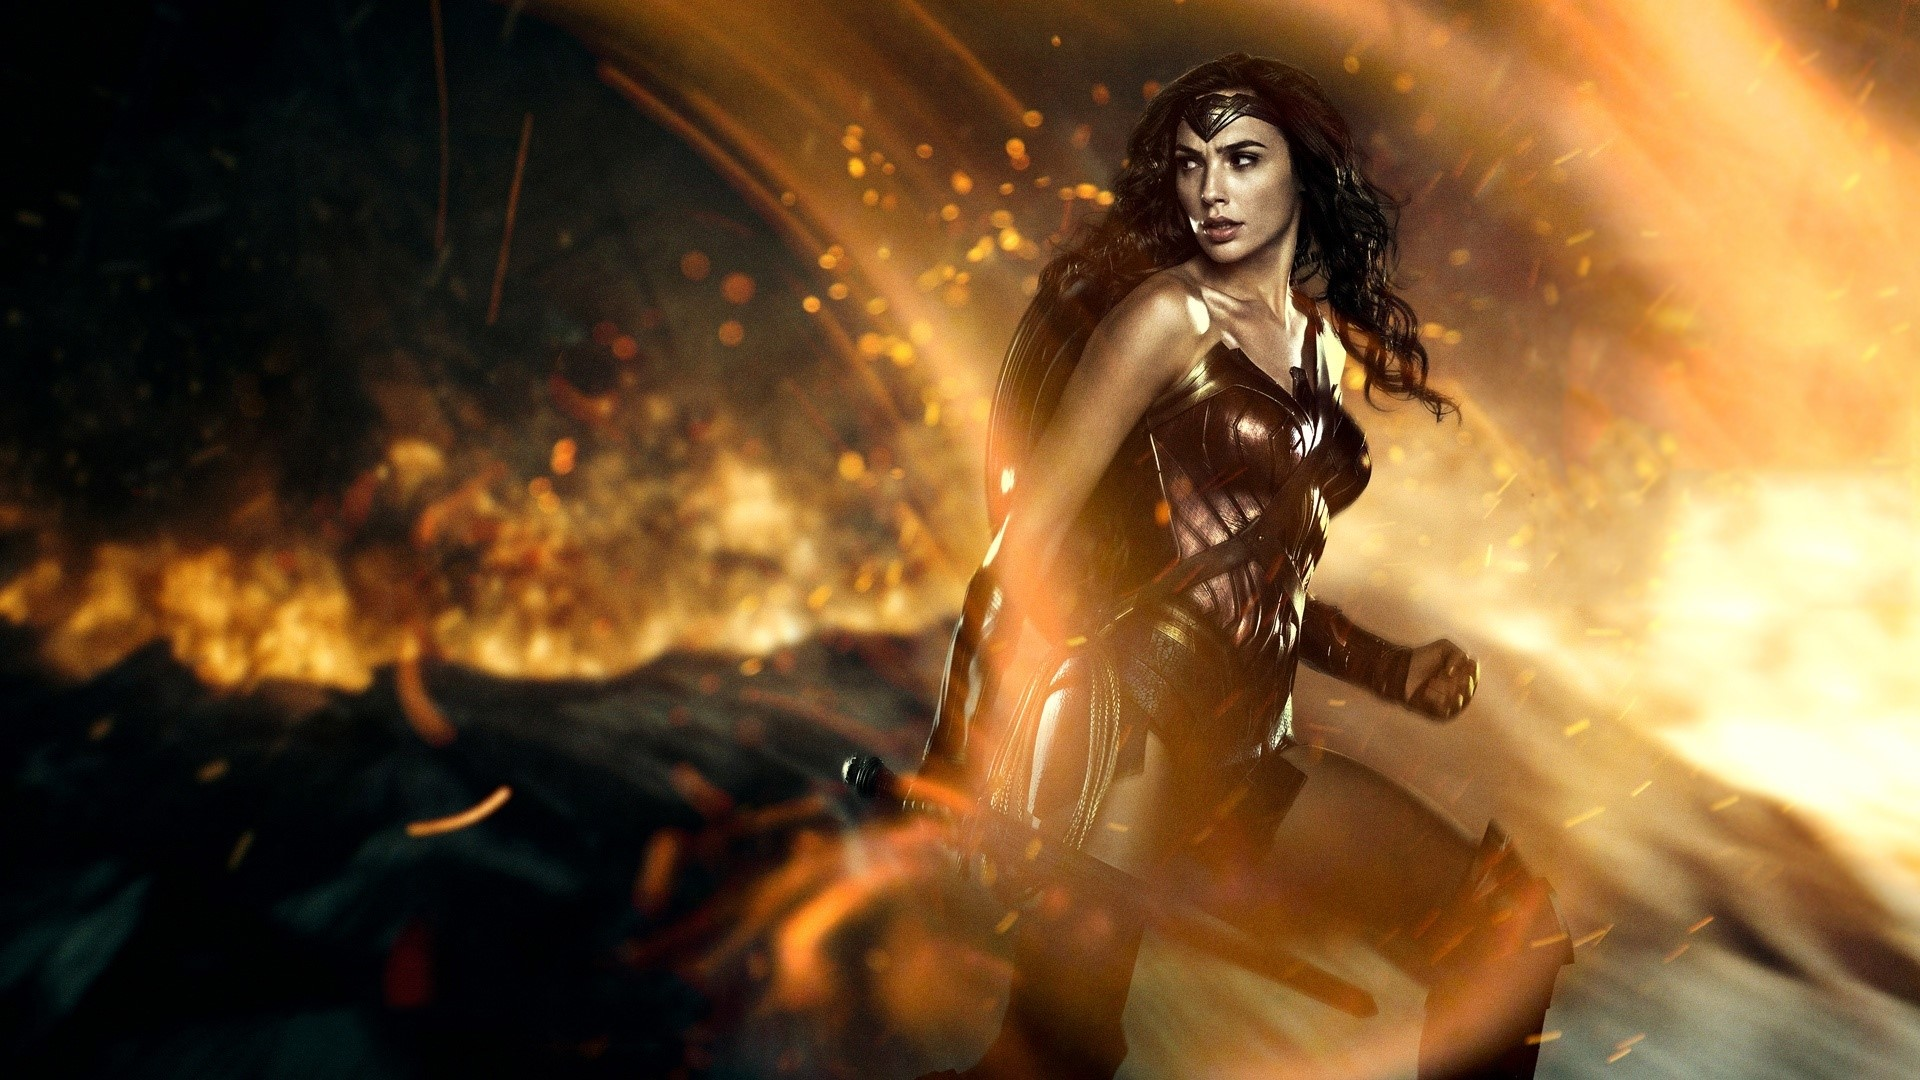 Gal Gadot As The Wonder Woman Wallpaper Full Hd Id 2713